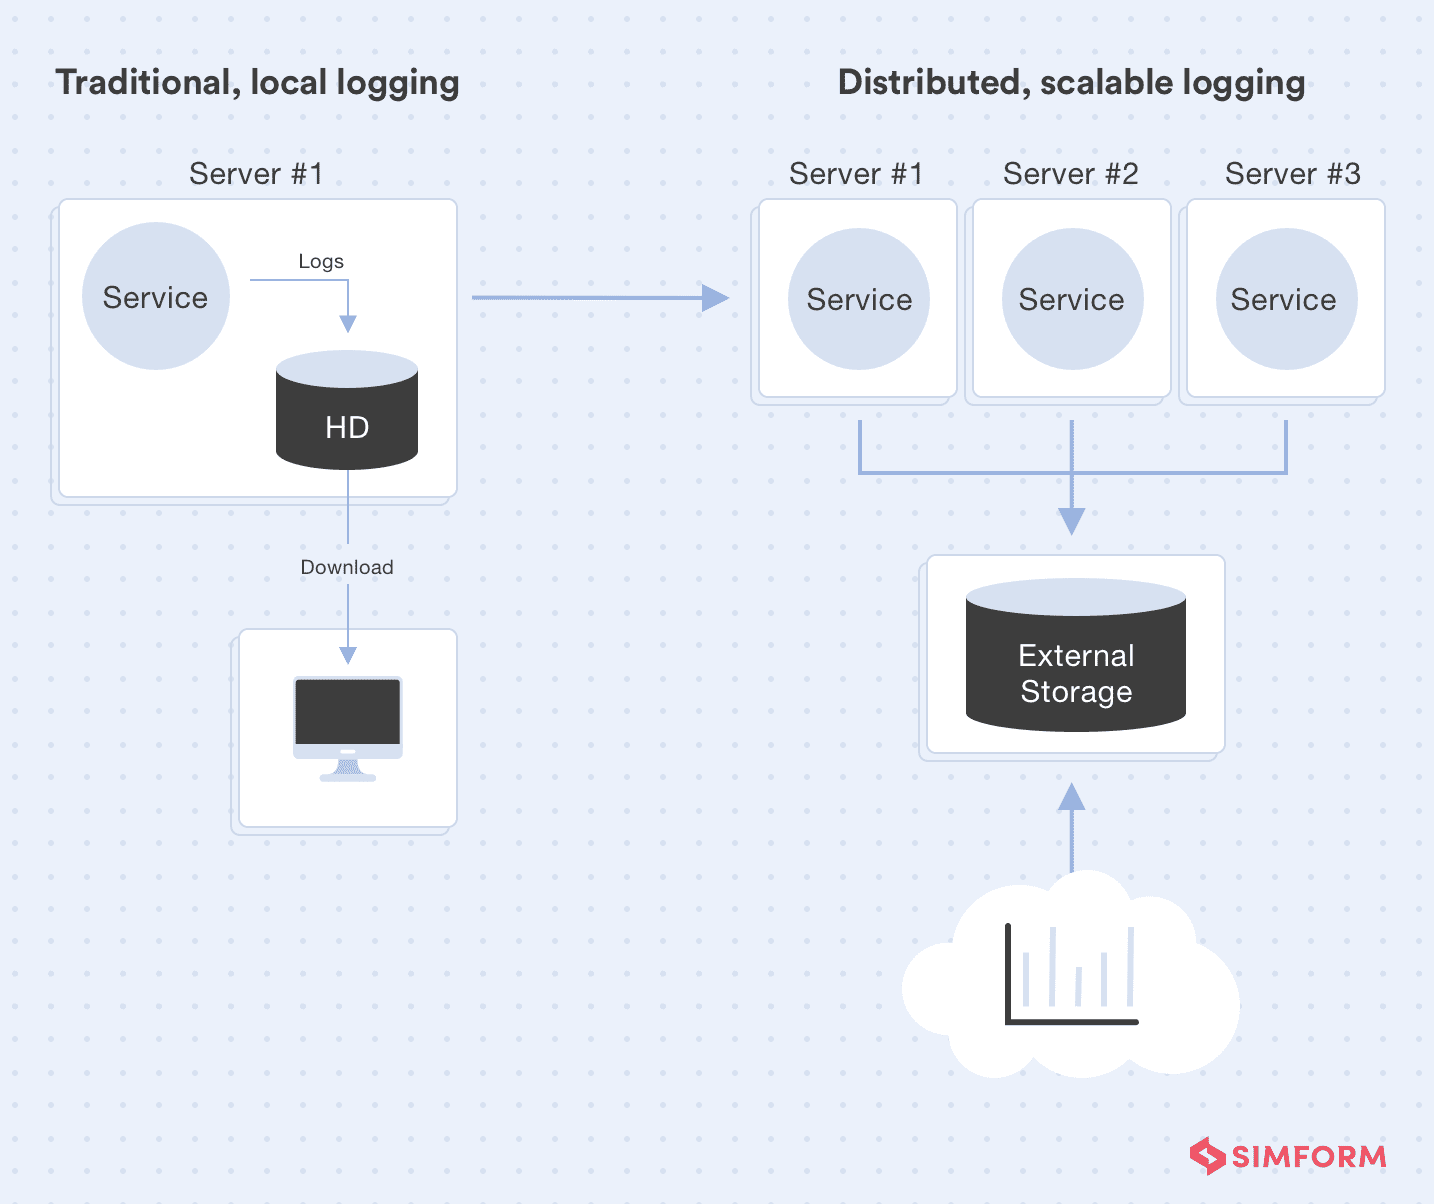 Traditional vs. Scalable logging